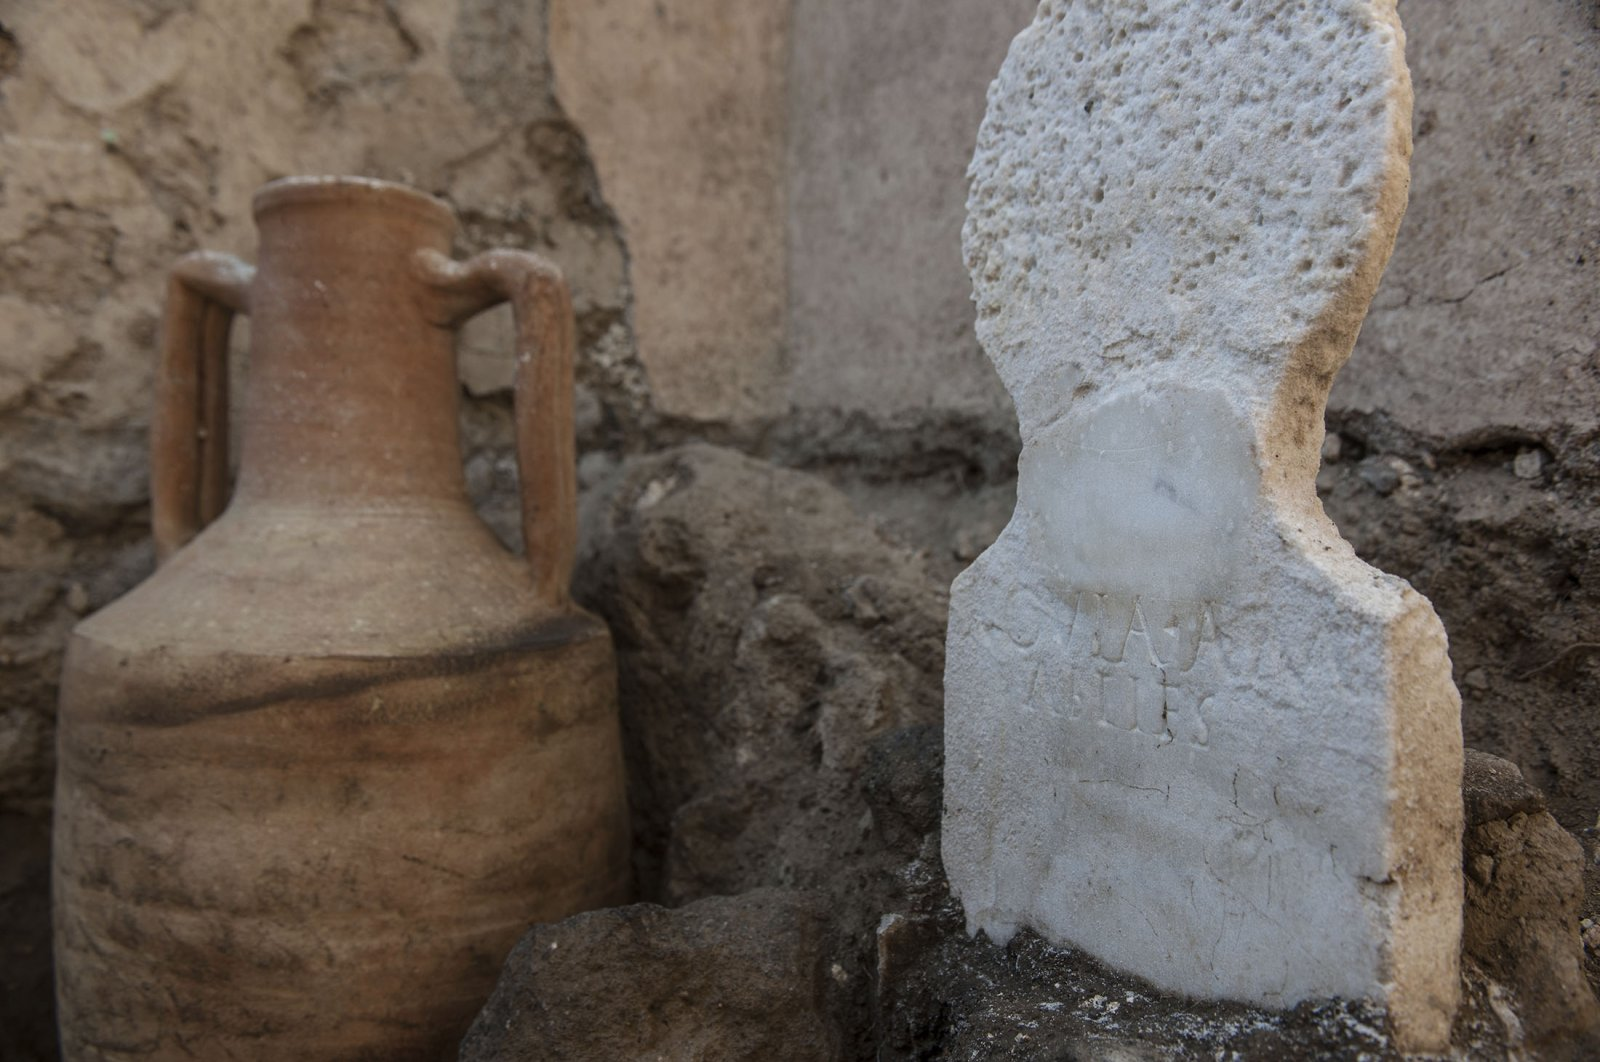 Some of the findings in the necropolis of Porta Sarno can be seenin an area not yet open to the public in the east of Pompeii's urban center, Pompeii, Italy. (Pompeii Archeological Park via AP)